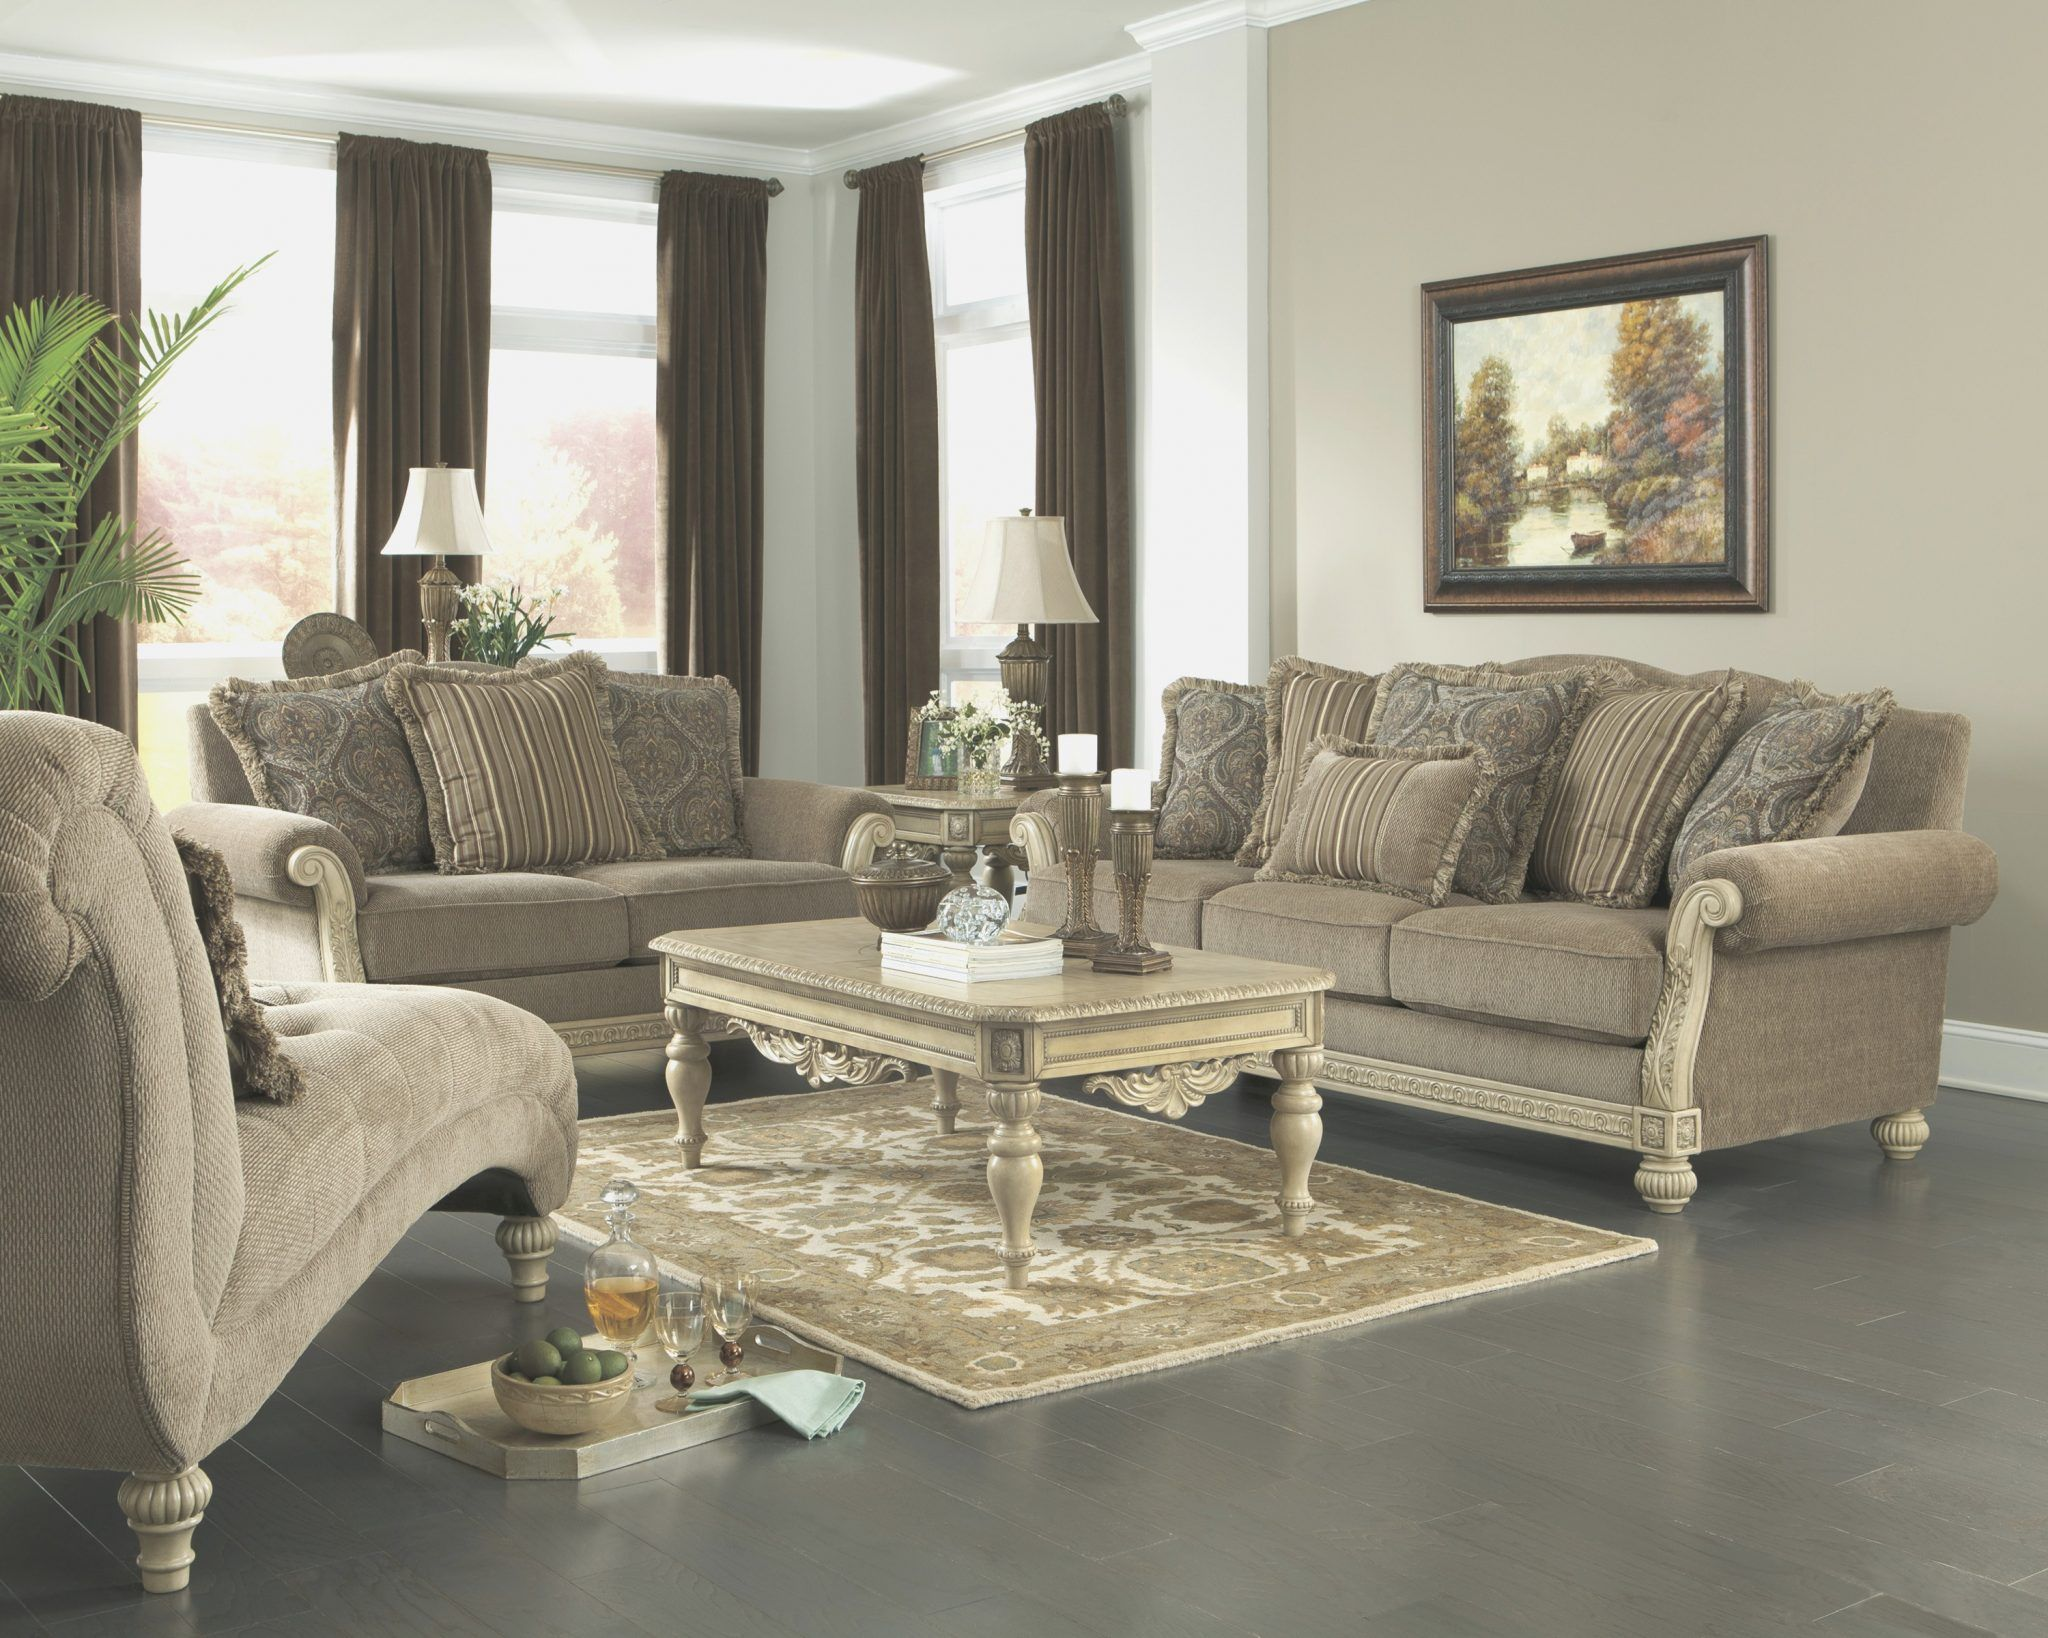 Ashleys Furniture Living Room Sets Ashley Furniture Bedroom Sets